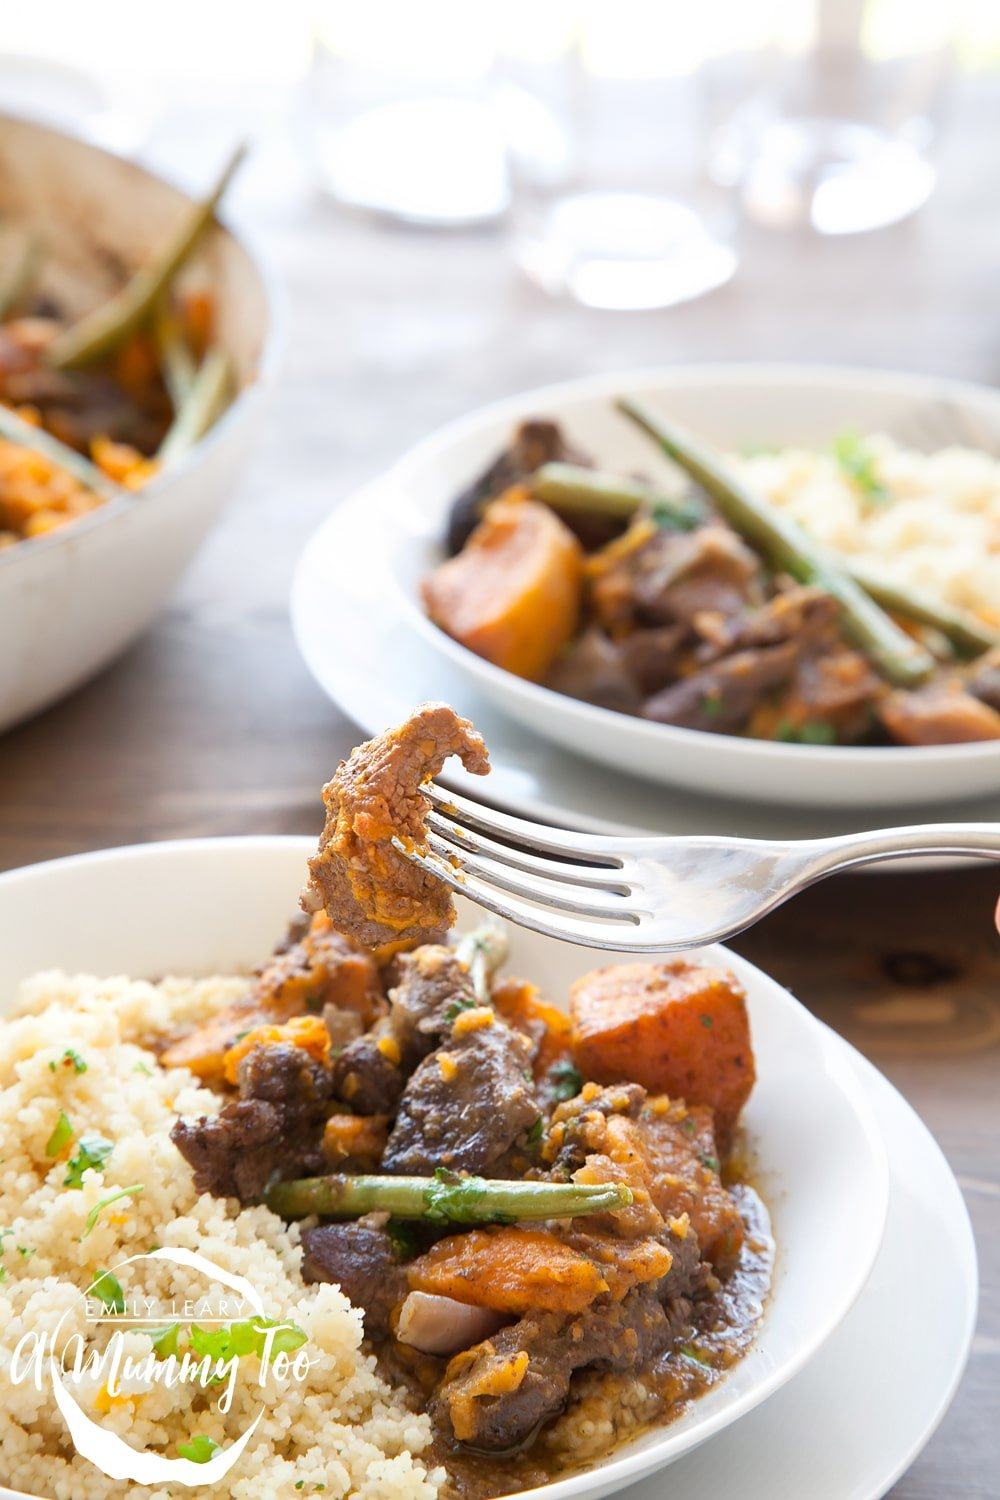 You'll love this deliciously warming casserole, made with sweet potato, lamb and green beans, gently spiced with Moroccan notes and slow cooked until the lamb melts in the mouth.